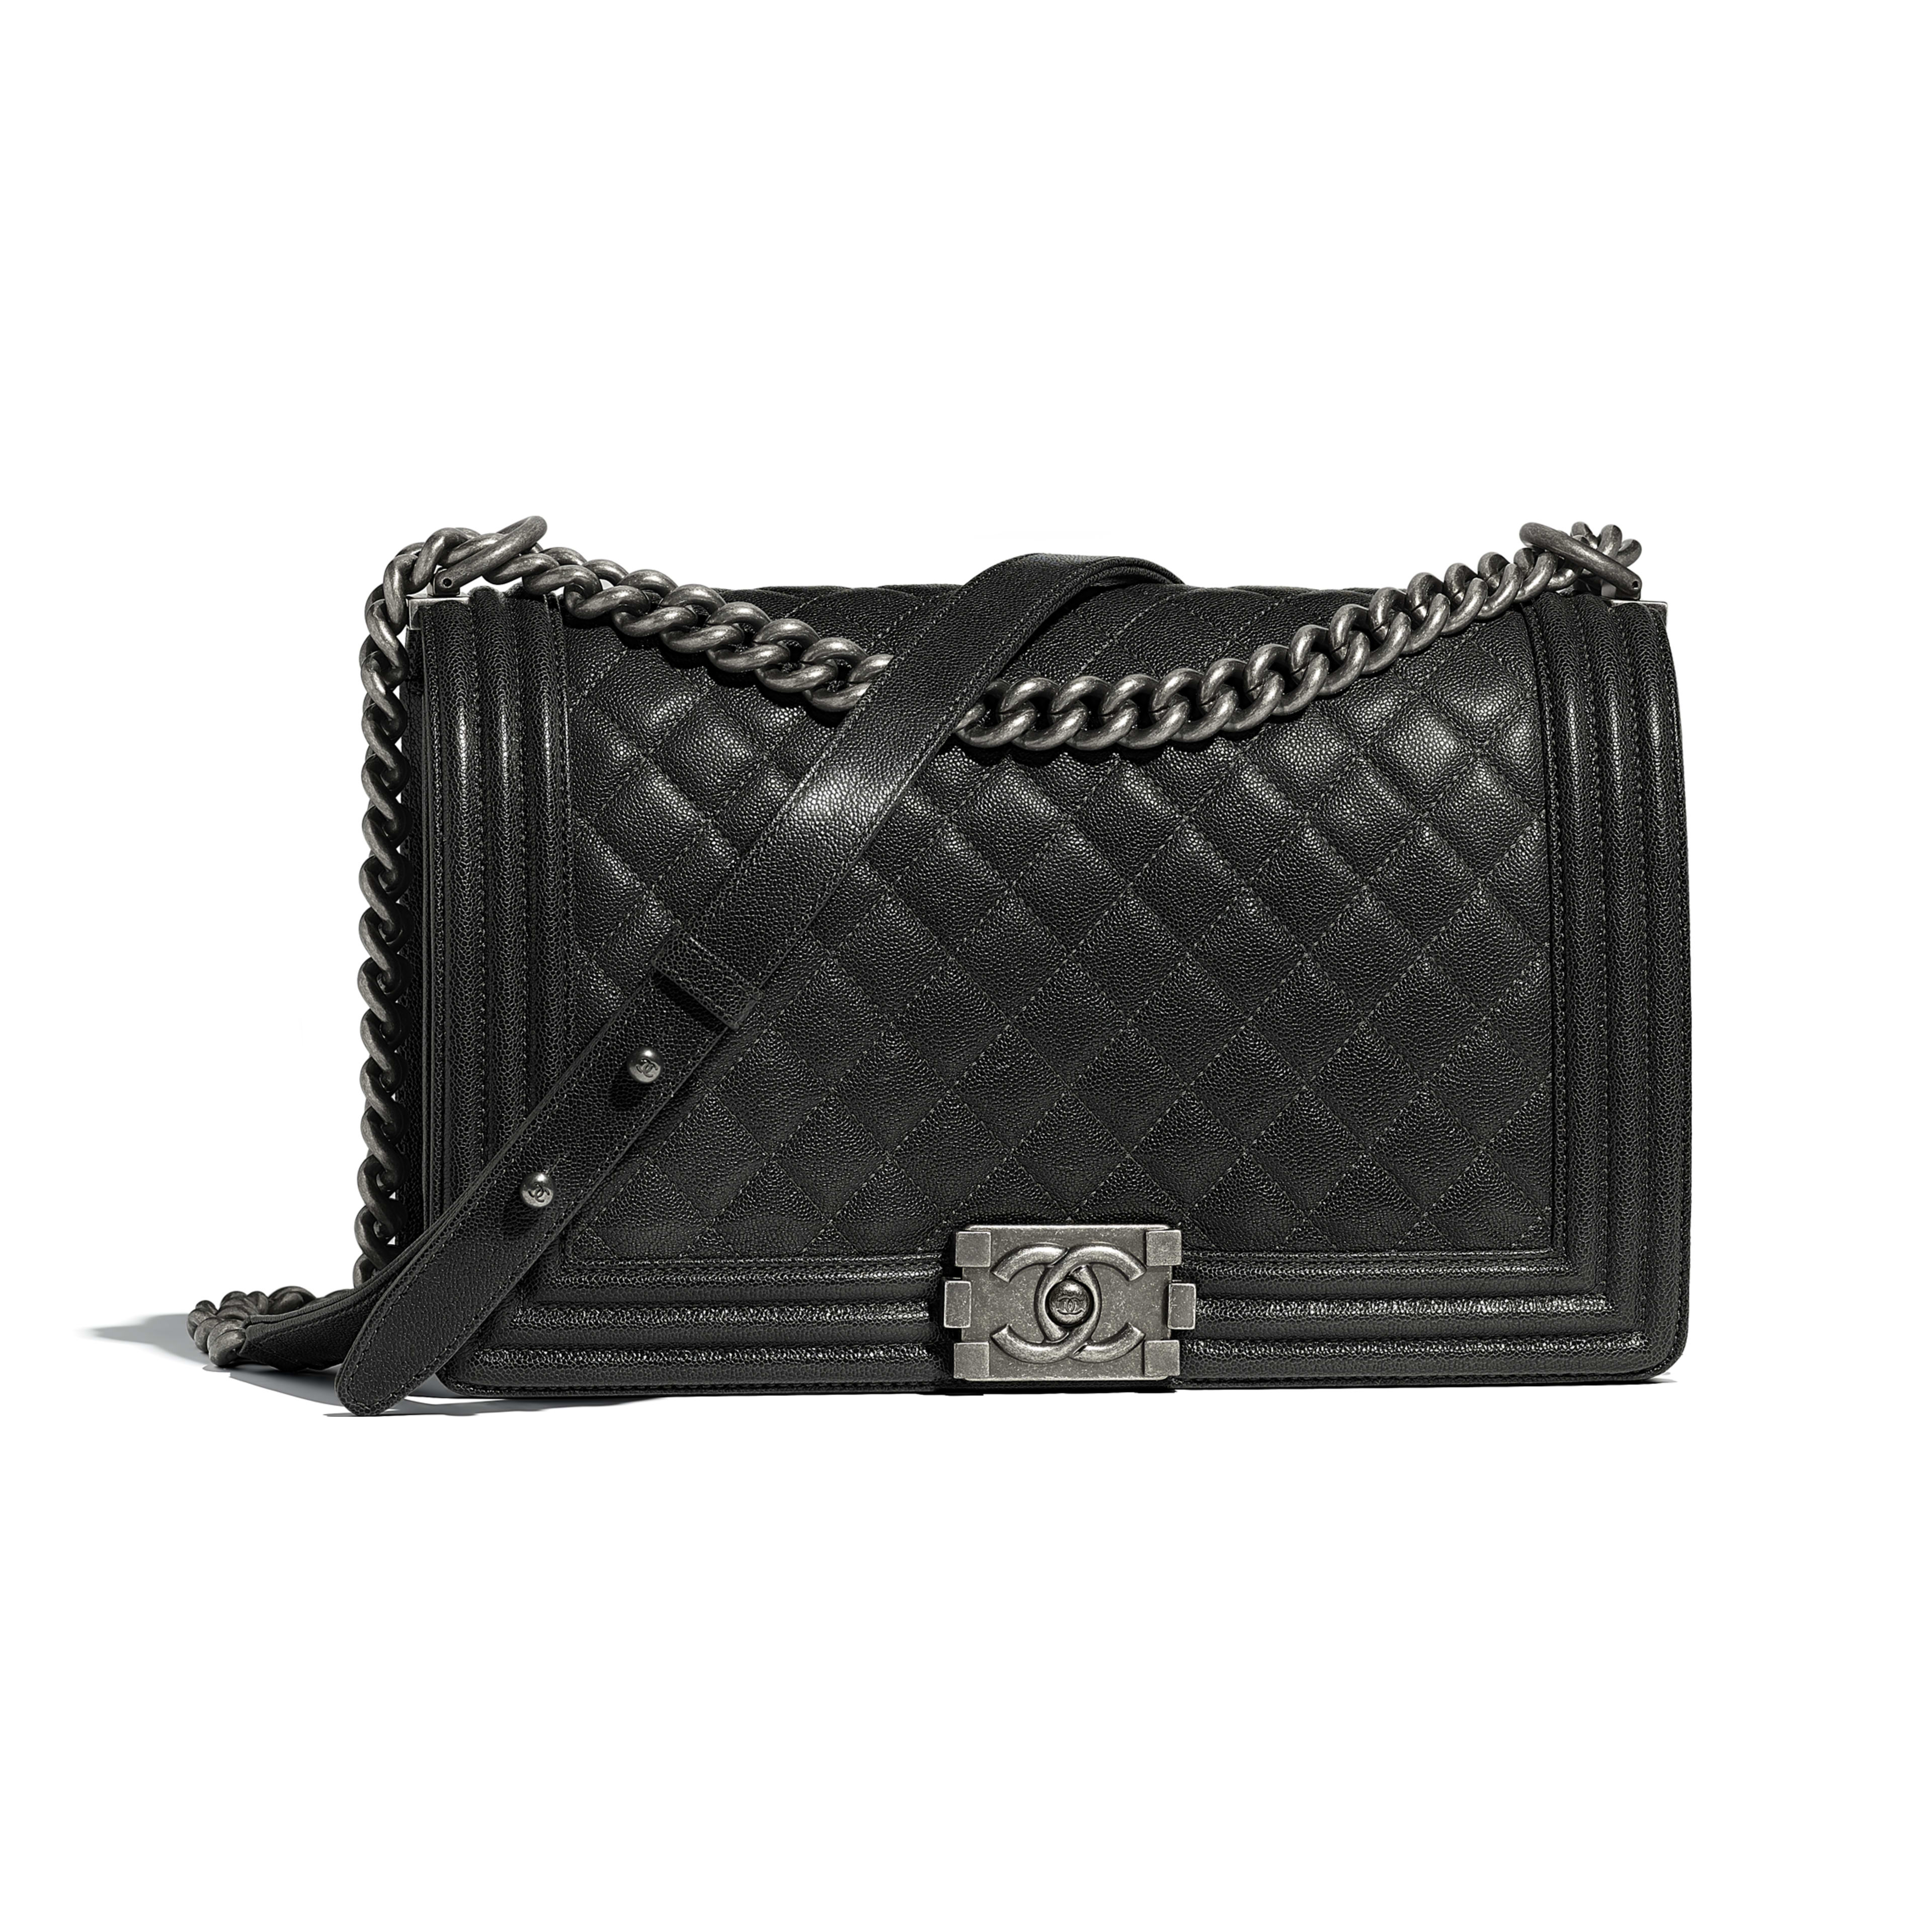 Large BOY CHANEL Handbag - Charcoal - Grained Calfskin & Ruthenium-Finish Metal - Default view - see full sized version